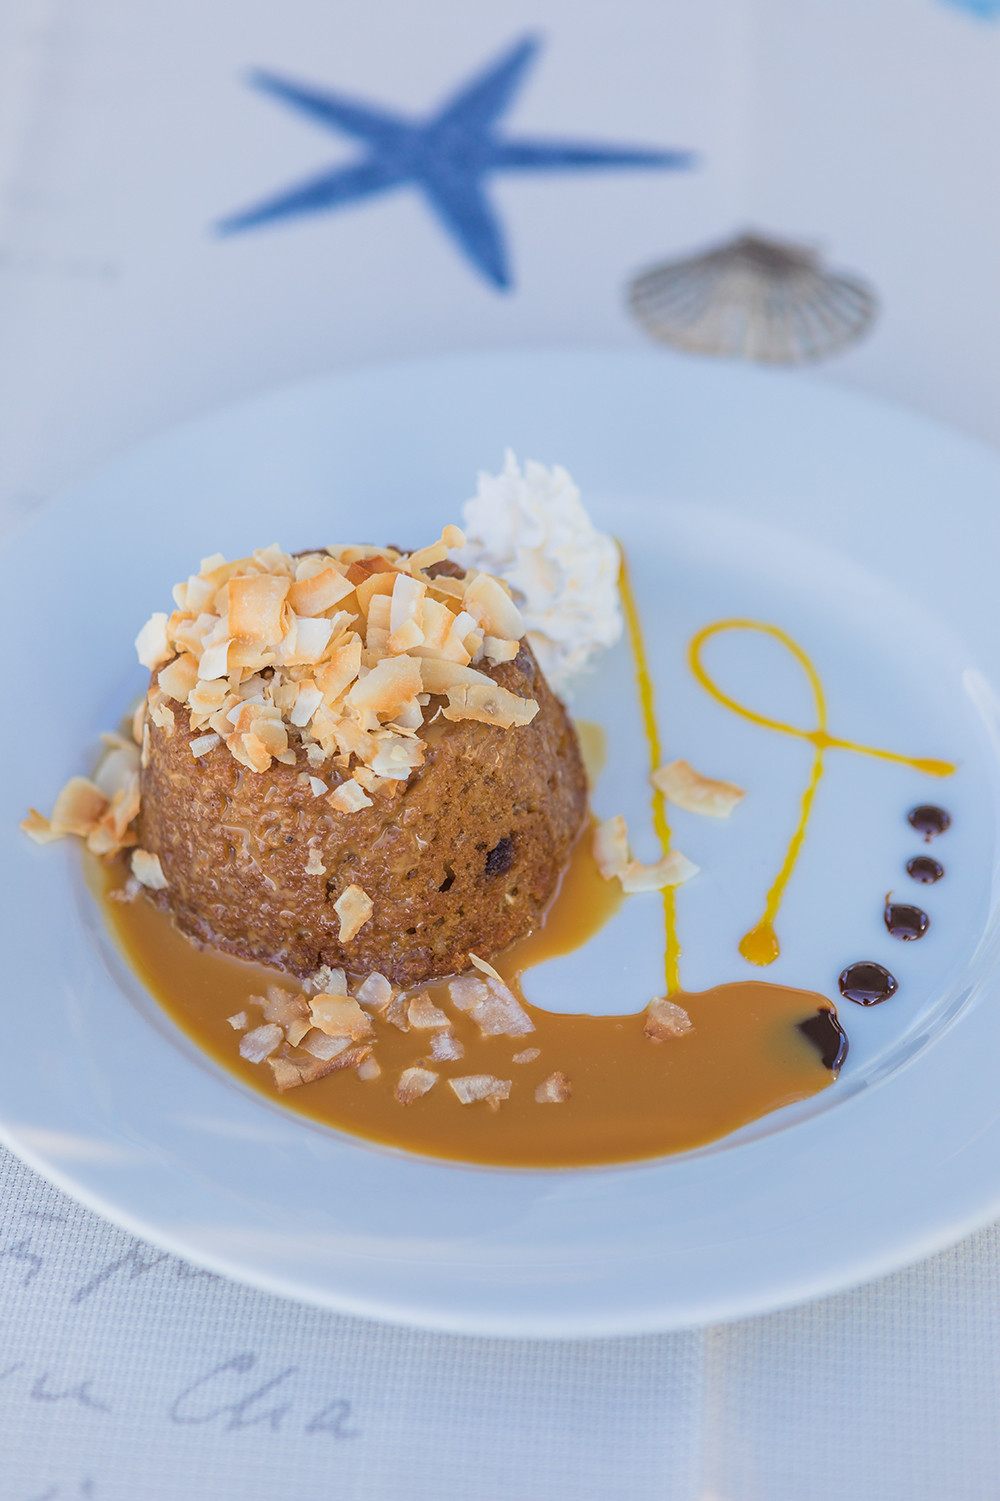 Best Desert from Harbour Grille Grand Cayman at Taste of Cayman 2019 Breadfruit cake with caramel sauce